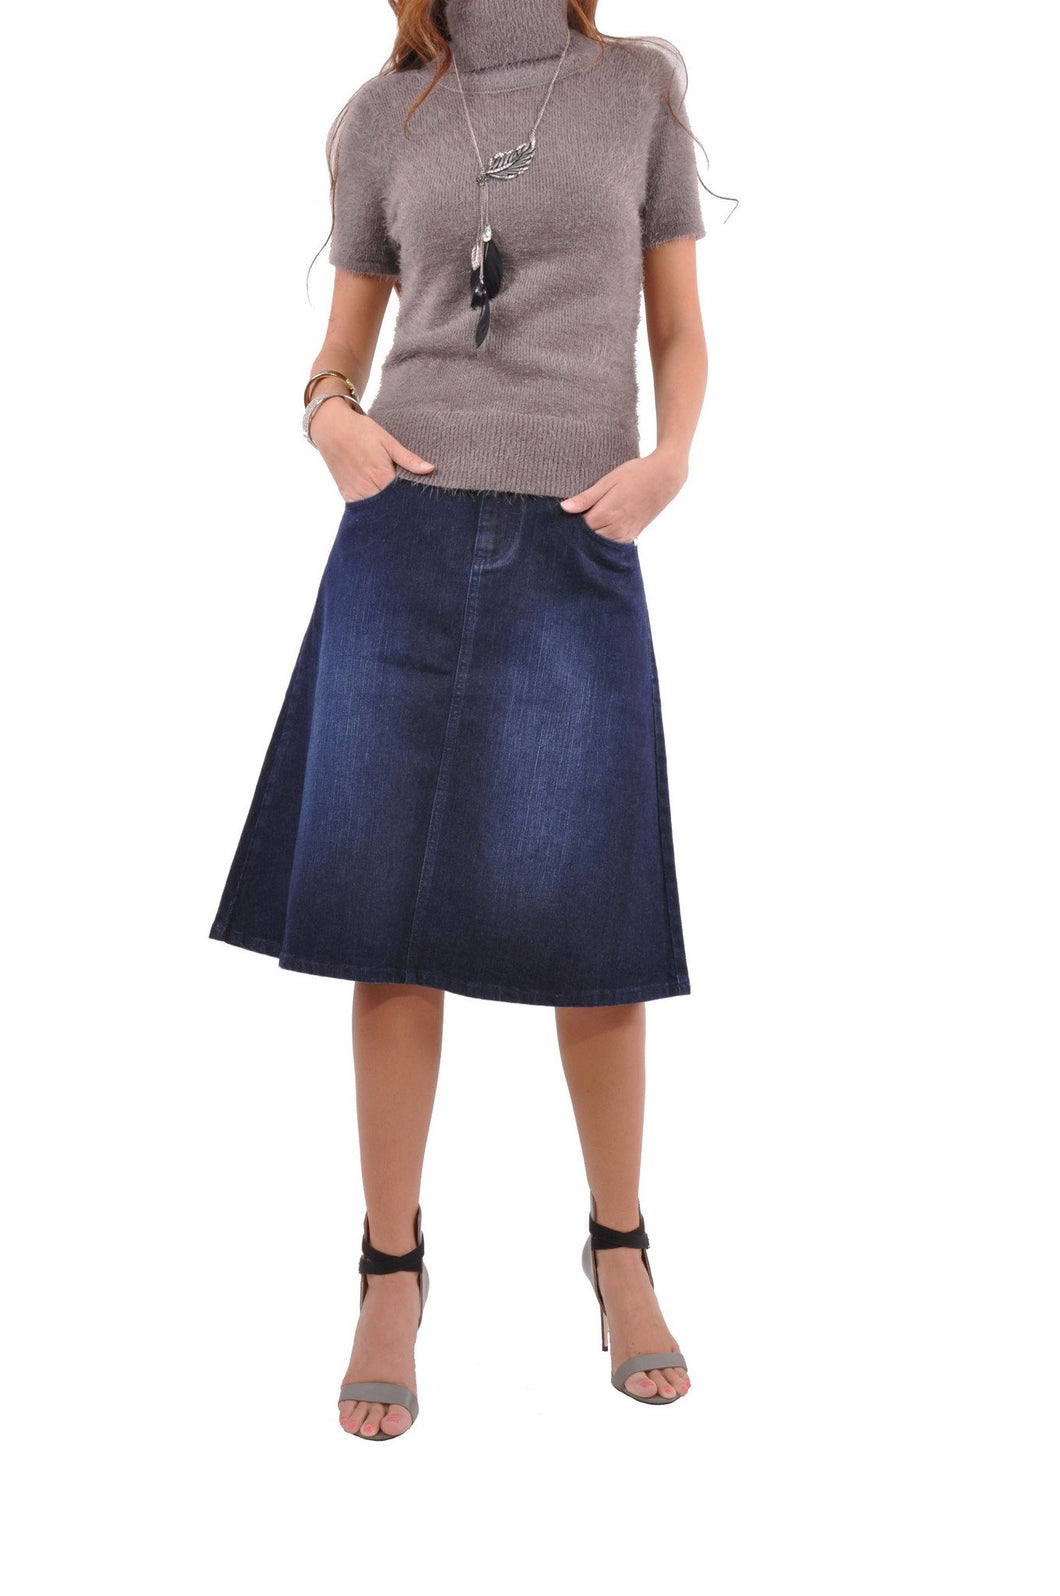 Simply Me Mid Length Denim Skirt Style 0581 - The Skirt Boutique